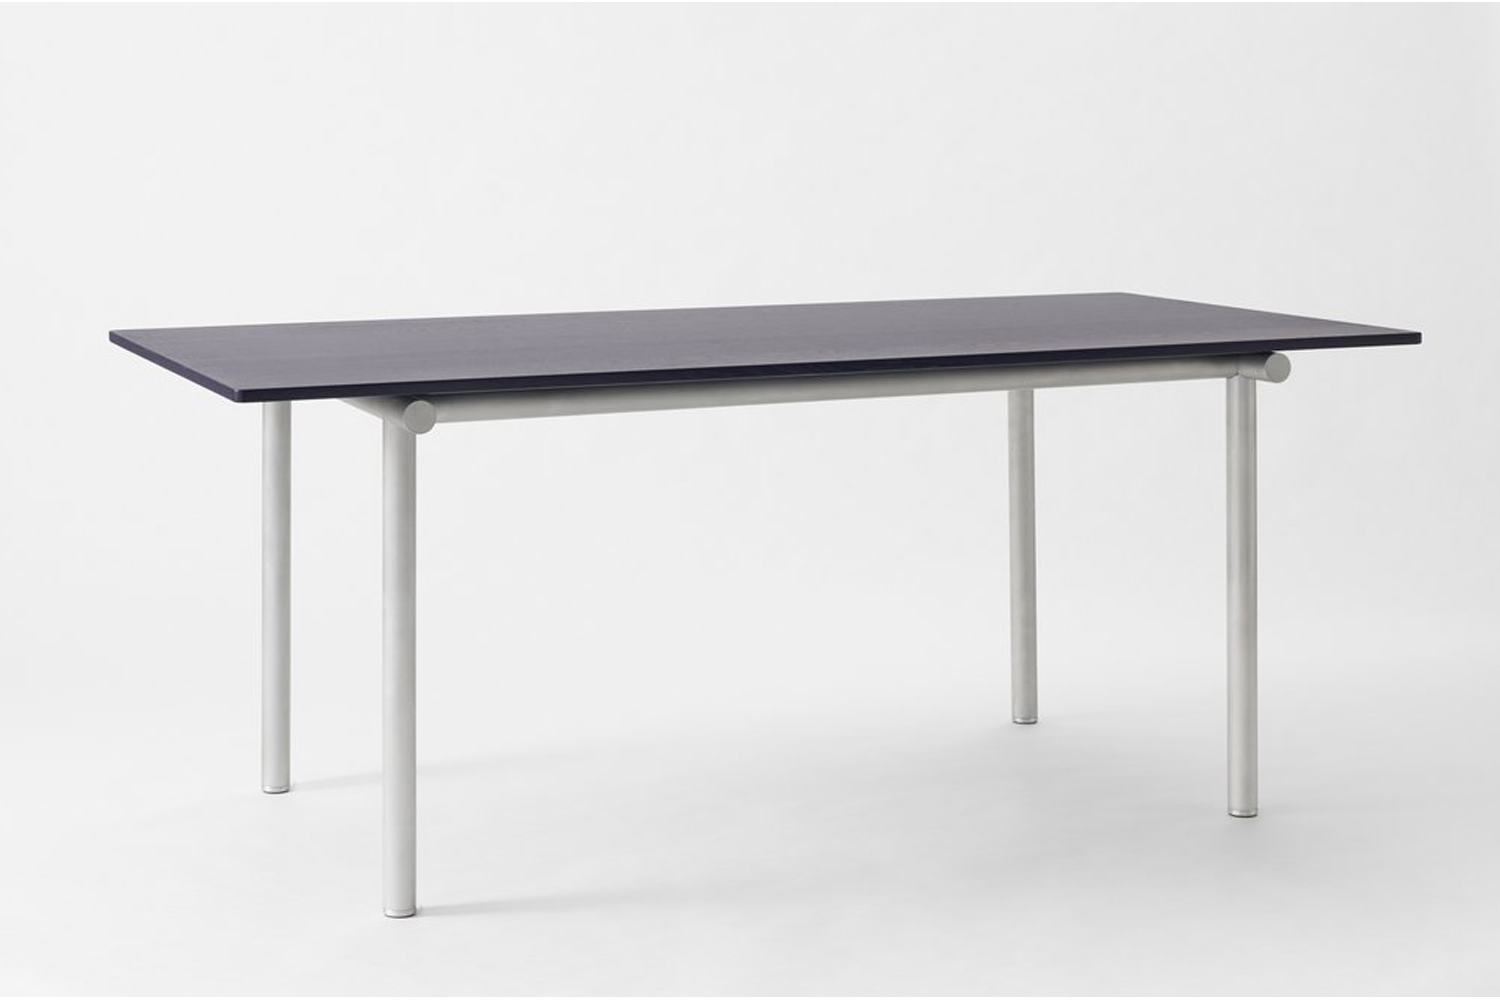 the faye toogood tubby tube navy ash and aluminum dining table is designed with 10